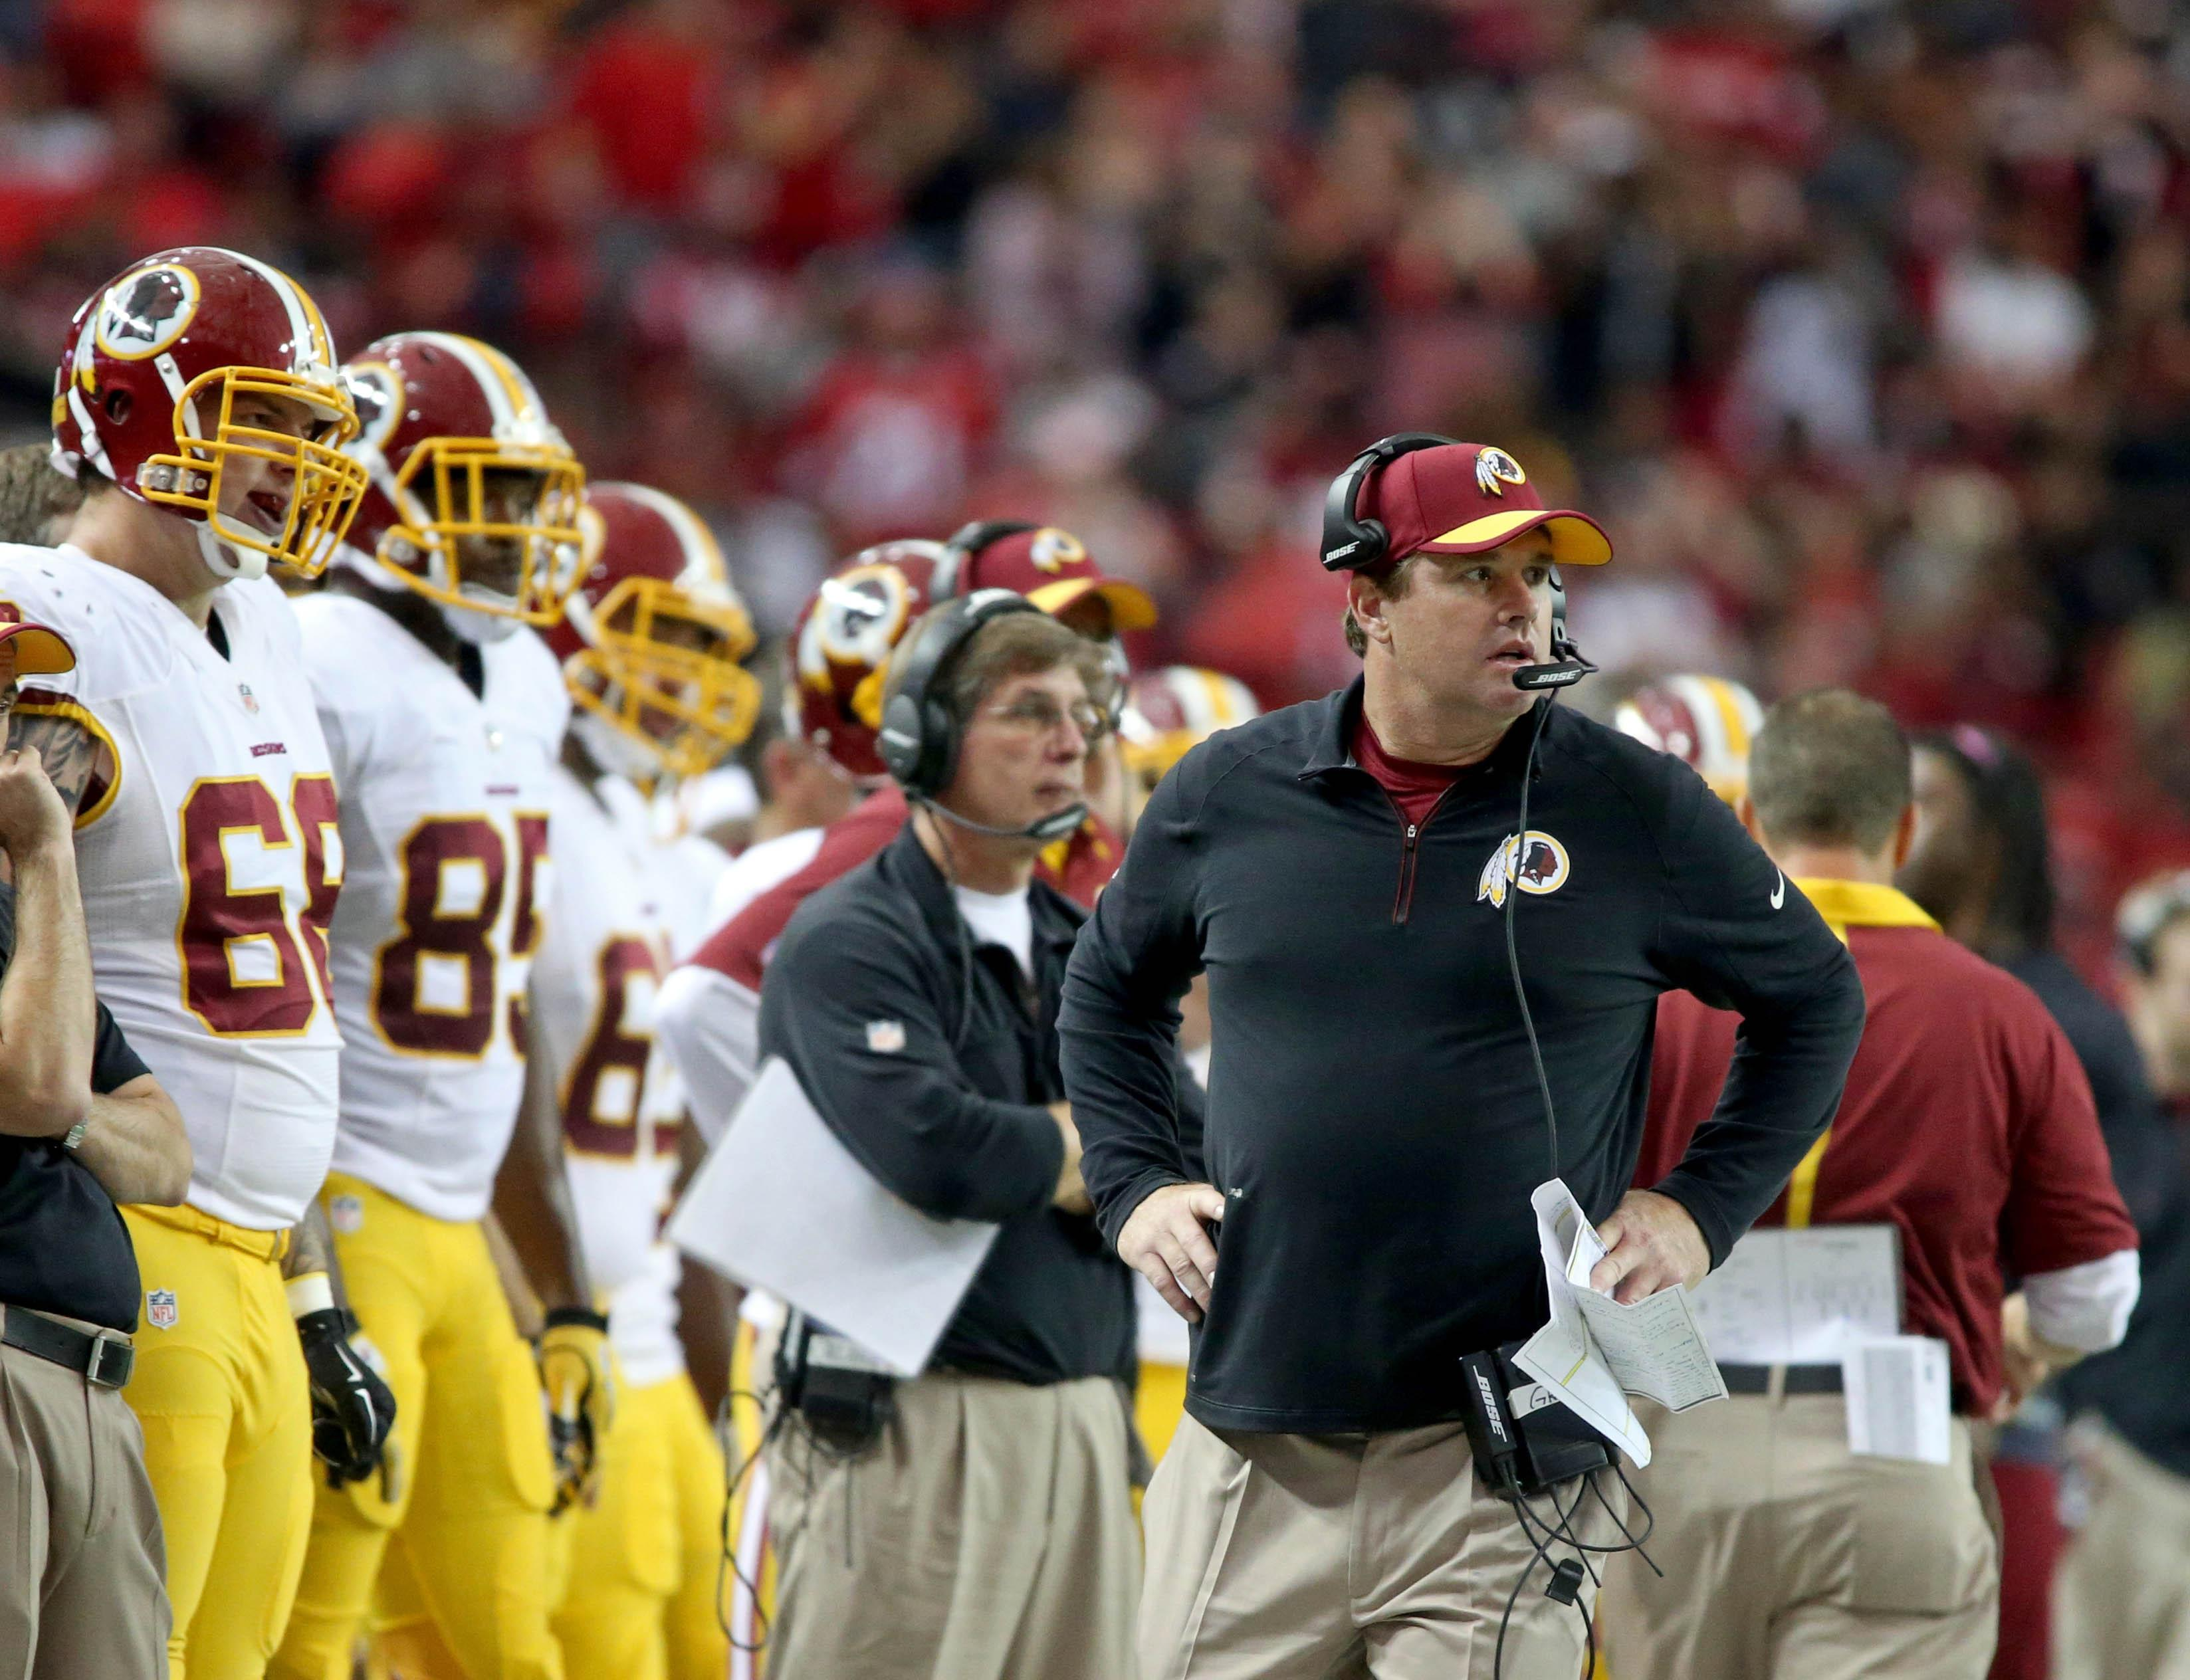 EL-BASHIR: Evidence mounting that culture is changing for Redskins